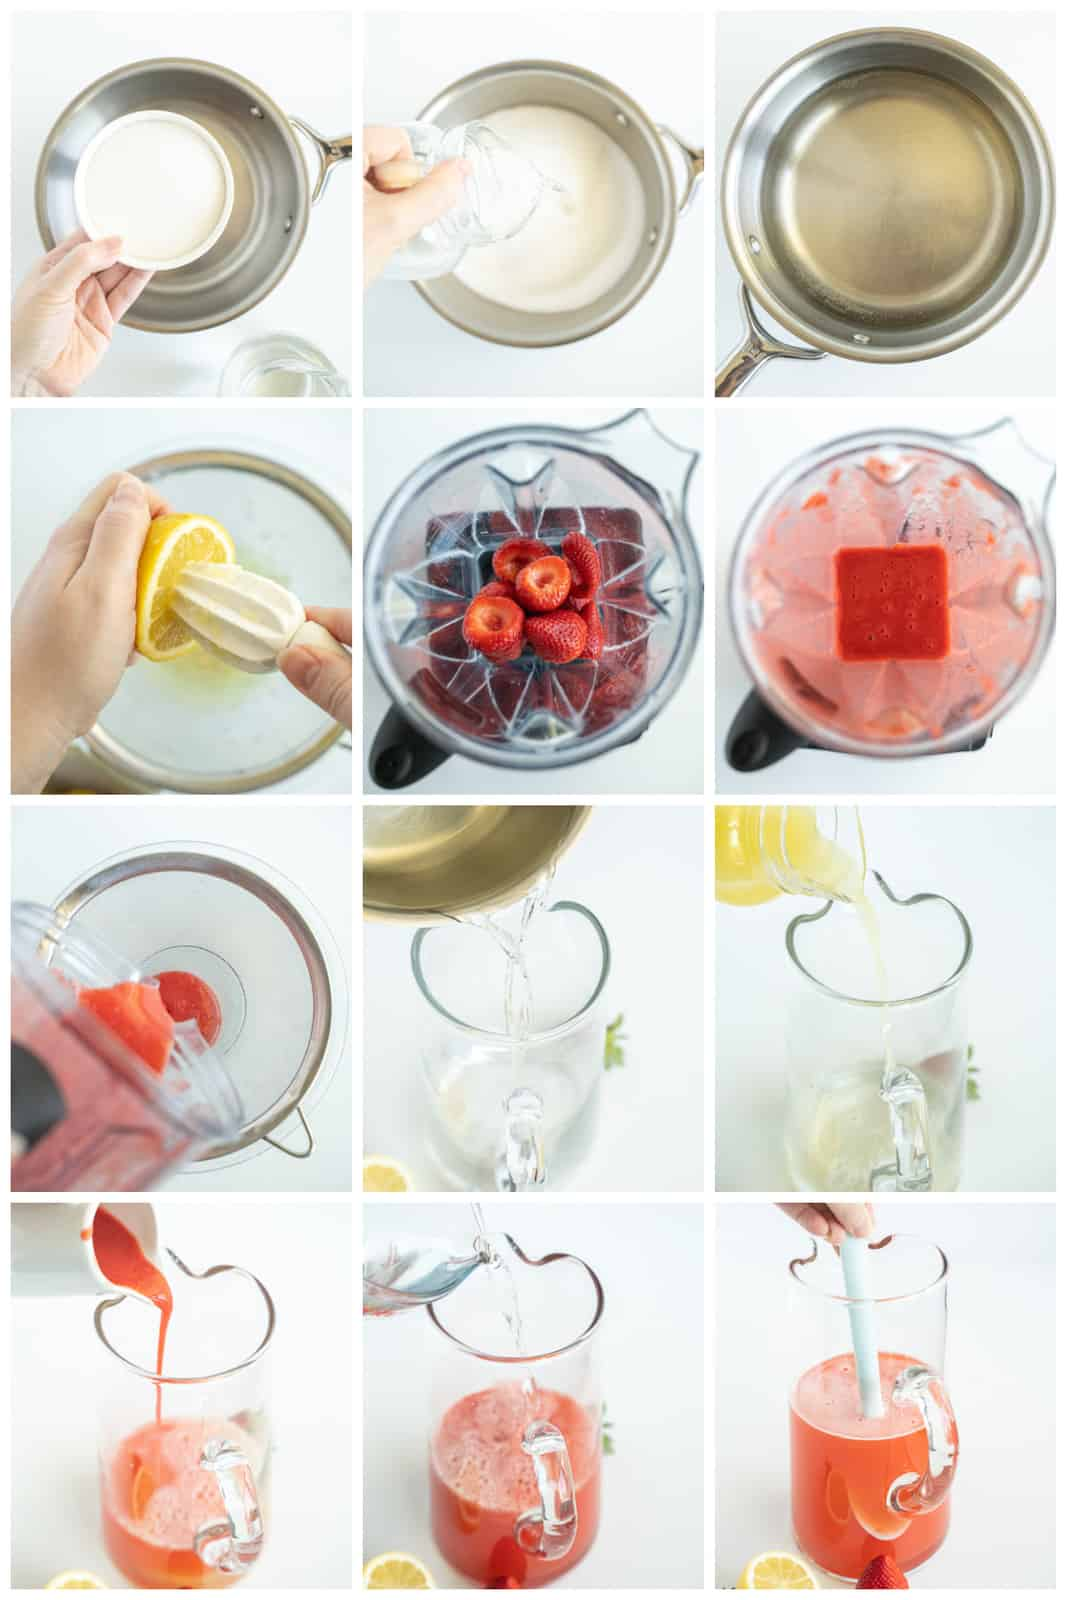 Step by step photos on how to make Strawberry Lemonade